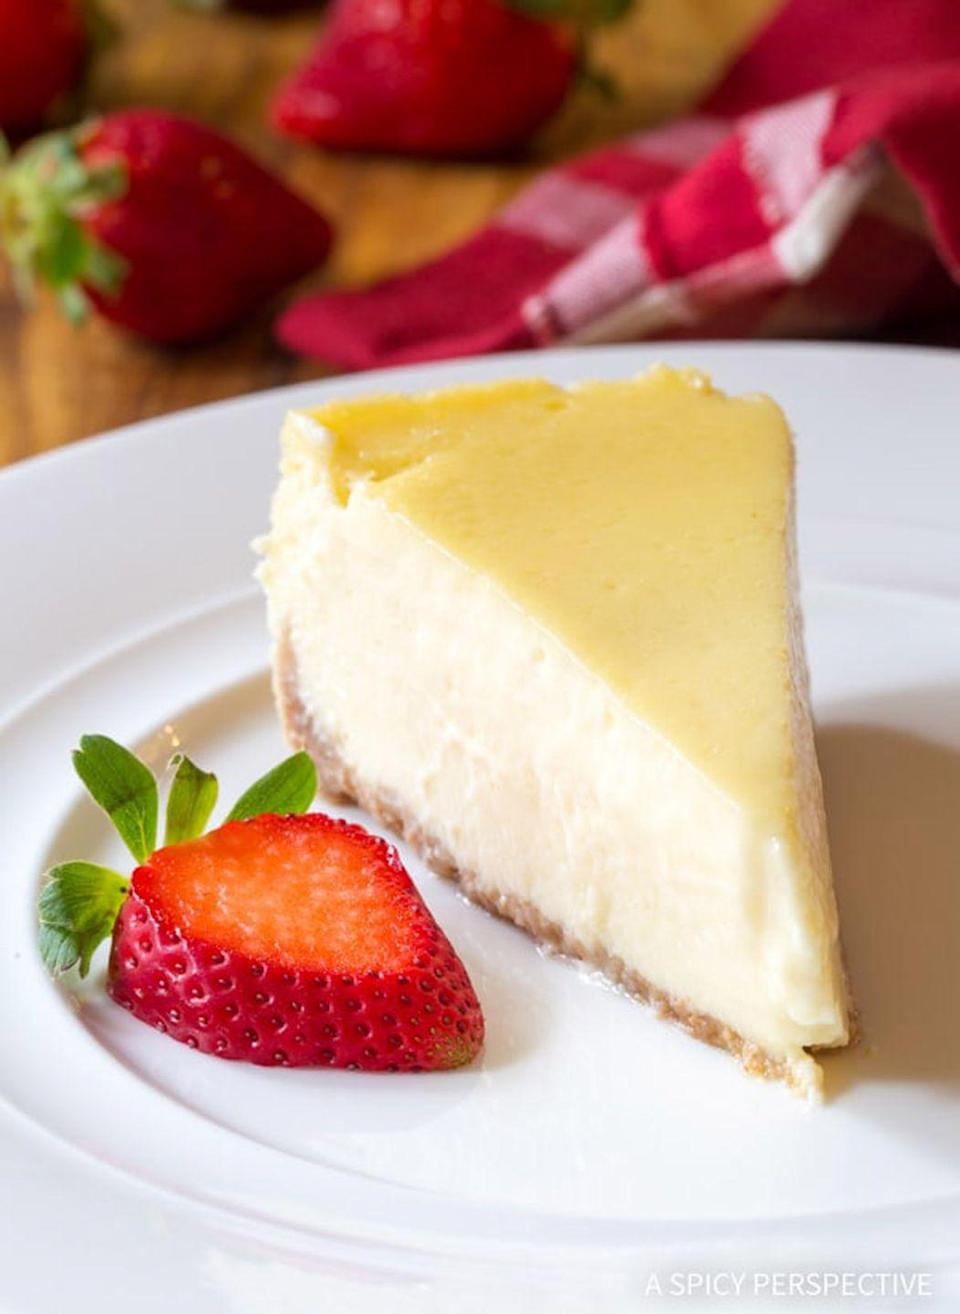 """<p>Believe it or not, you can make the most perfect New York style cheesecake right in your slow cooker.</p><p><strong>Get the recipe at <a href=""""https://www.aspicyperspective.com/perfect-slow-cooker-cheesecake/"""" rel=""""nofollow noopener"""" target=""""_blank"""" data-ylk=""""slk:A Spicy Perspective"""" class=""""link rapid-noclick-resp"""">A Spicy Perspective</a>.</strong><br></p>"""